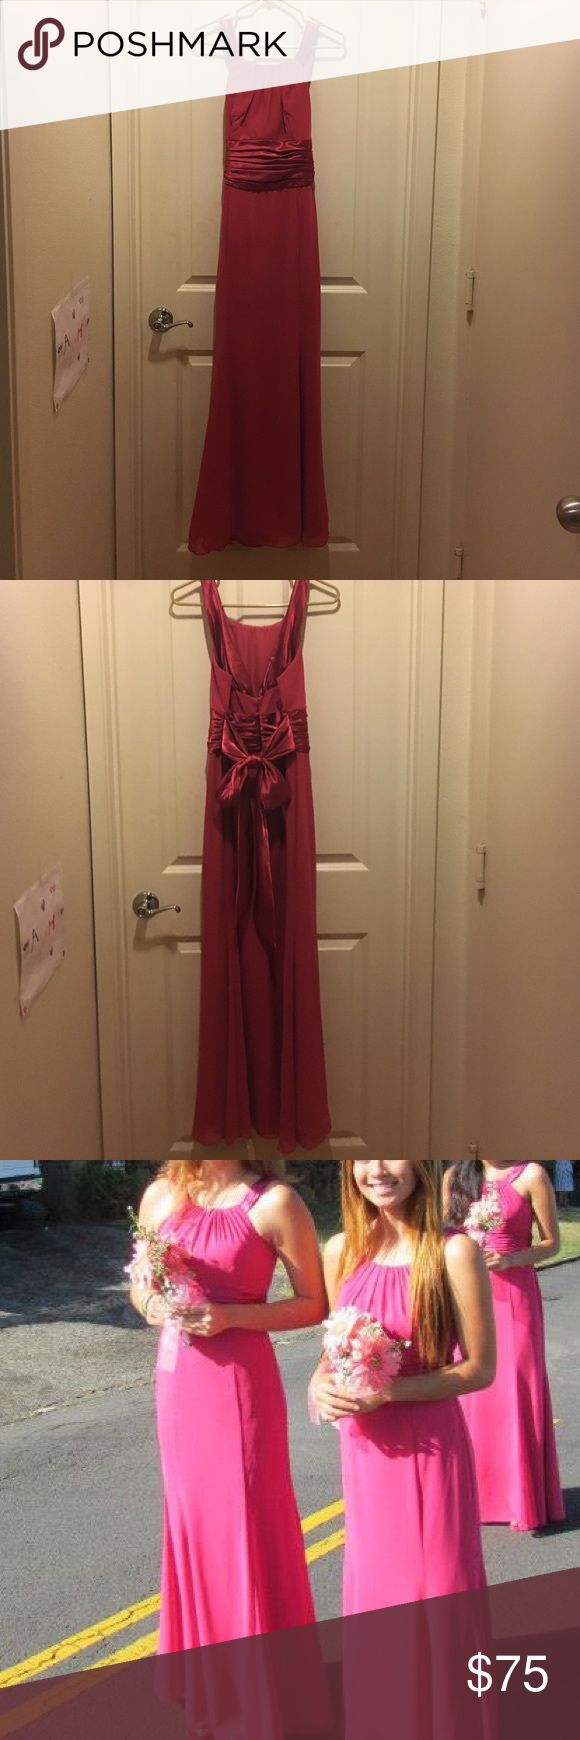 Formal /Bridesmaid / Prom Dress David's Bridal forms gown.  Actual color is called watermelon.  Excellent for prom, or a bridesmaid.  Dress is nearly brand new; was worn just once. David's Bridal Dresses Prom